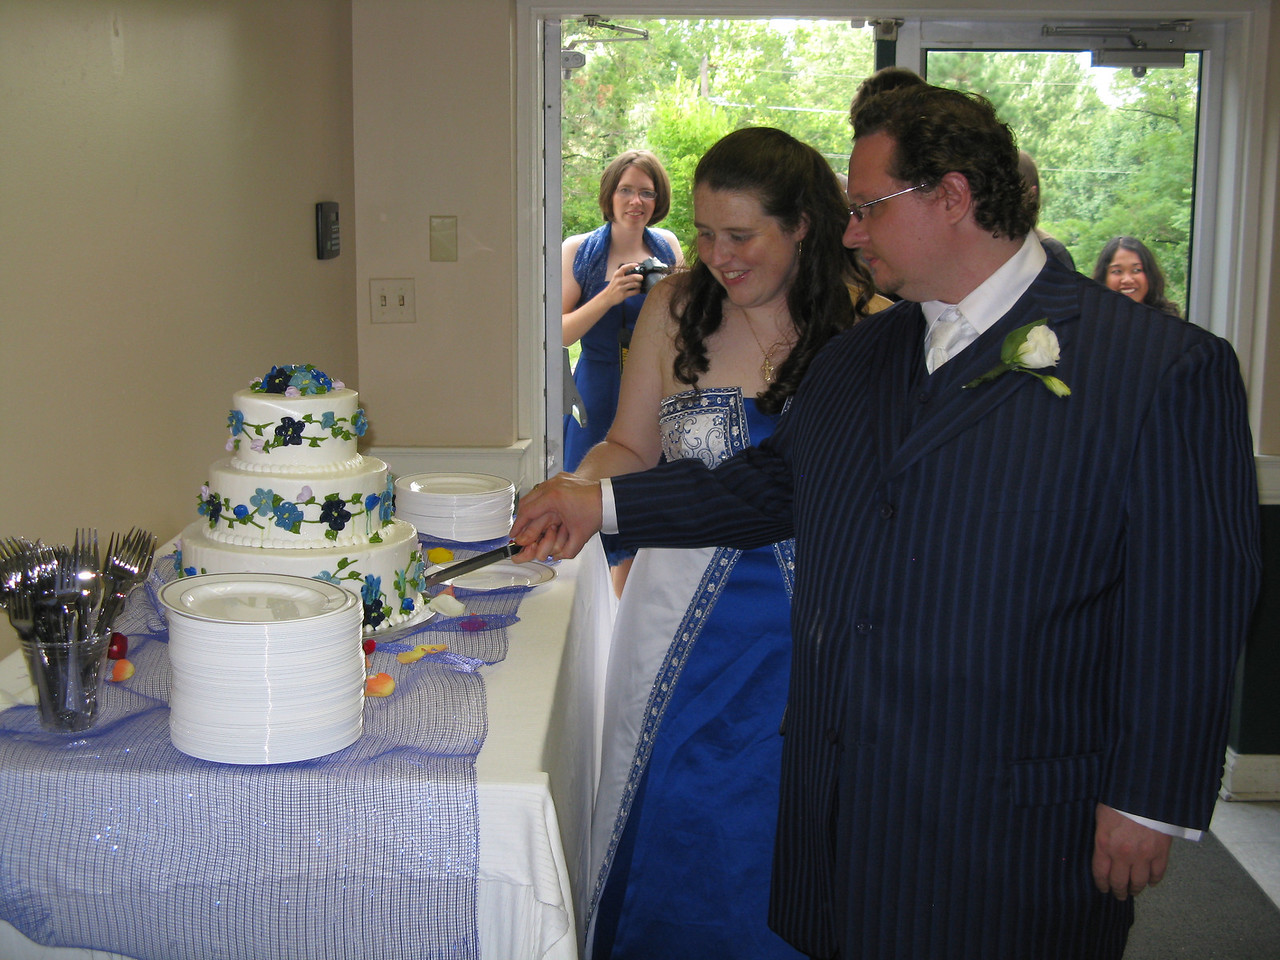 Cutting the cake.